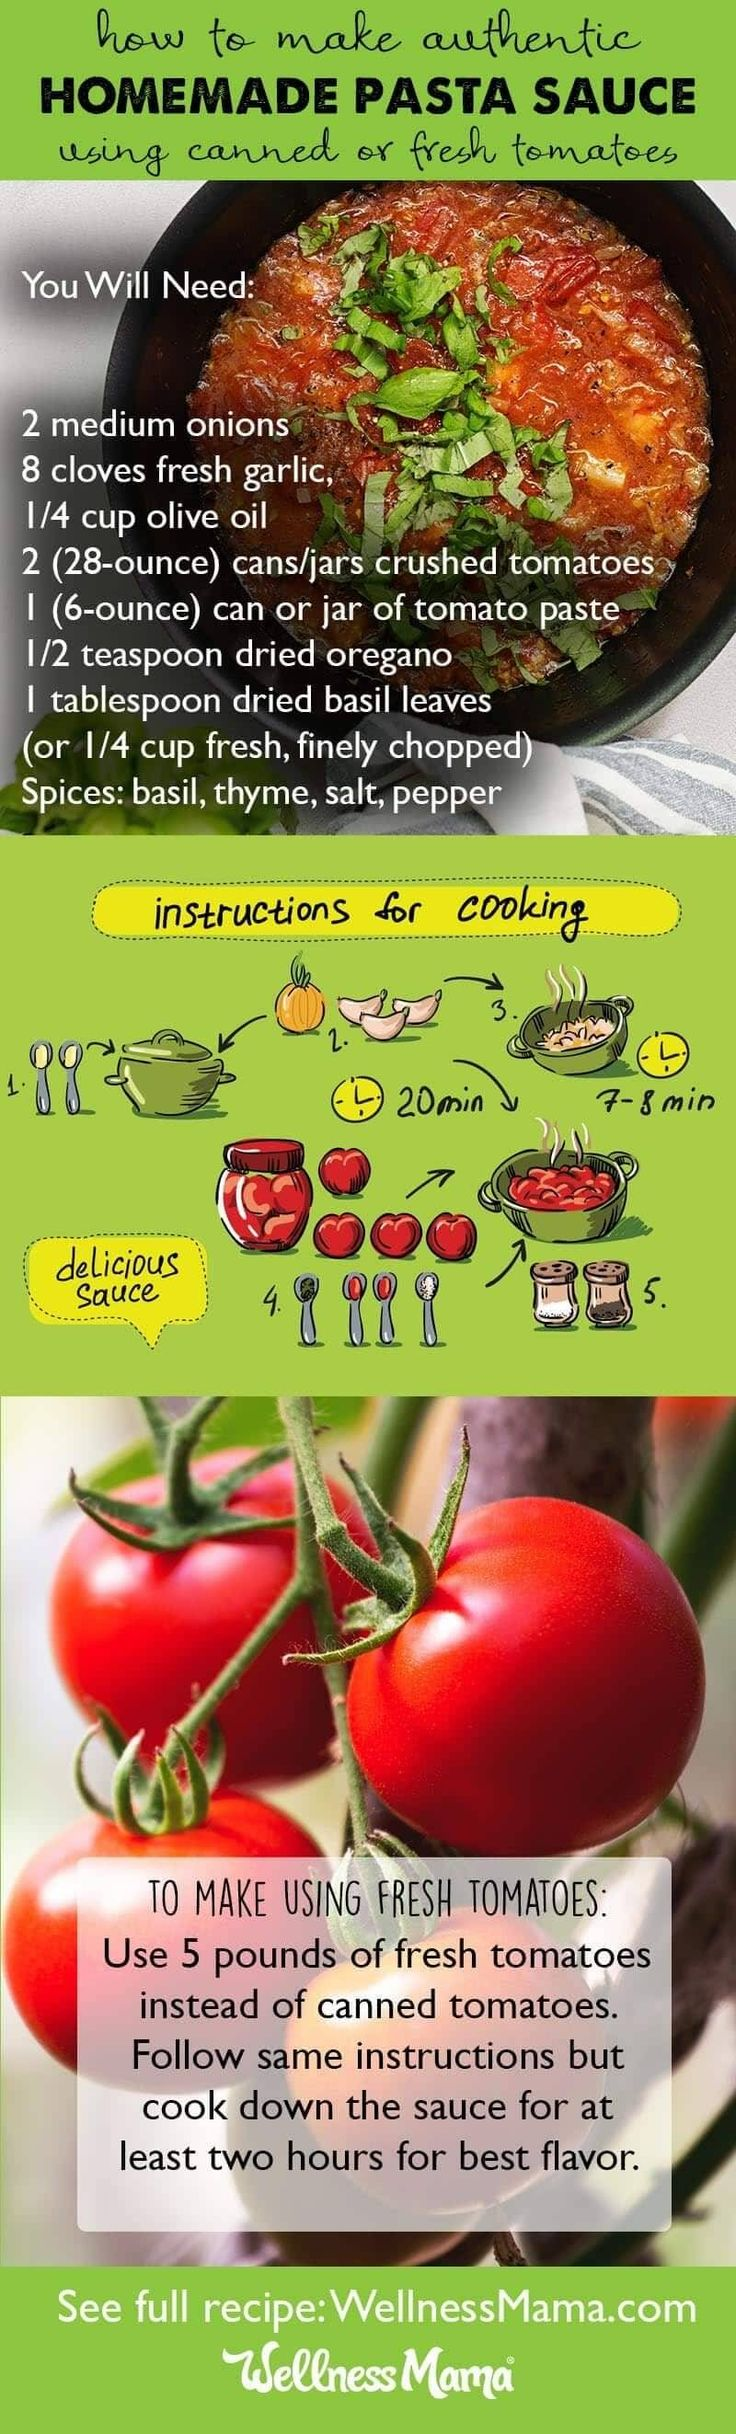 An authentic homemade Italian pasta sauce recipe using fresh tomatoes and herbs.